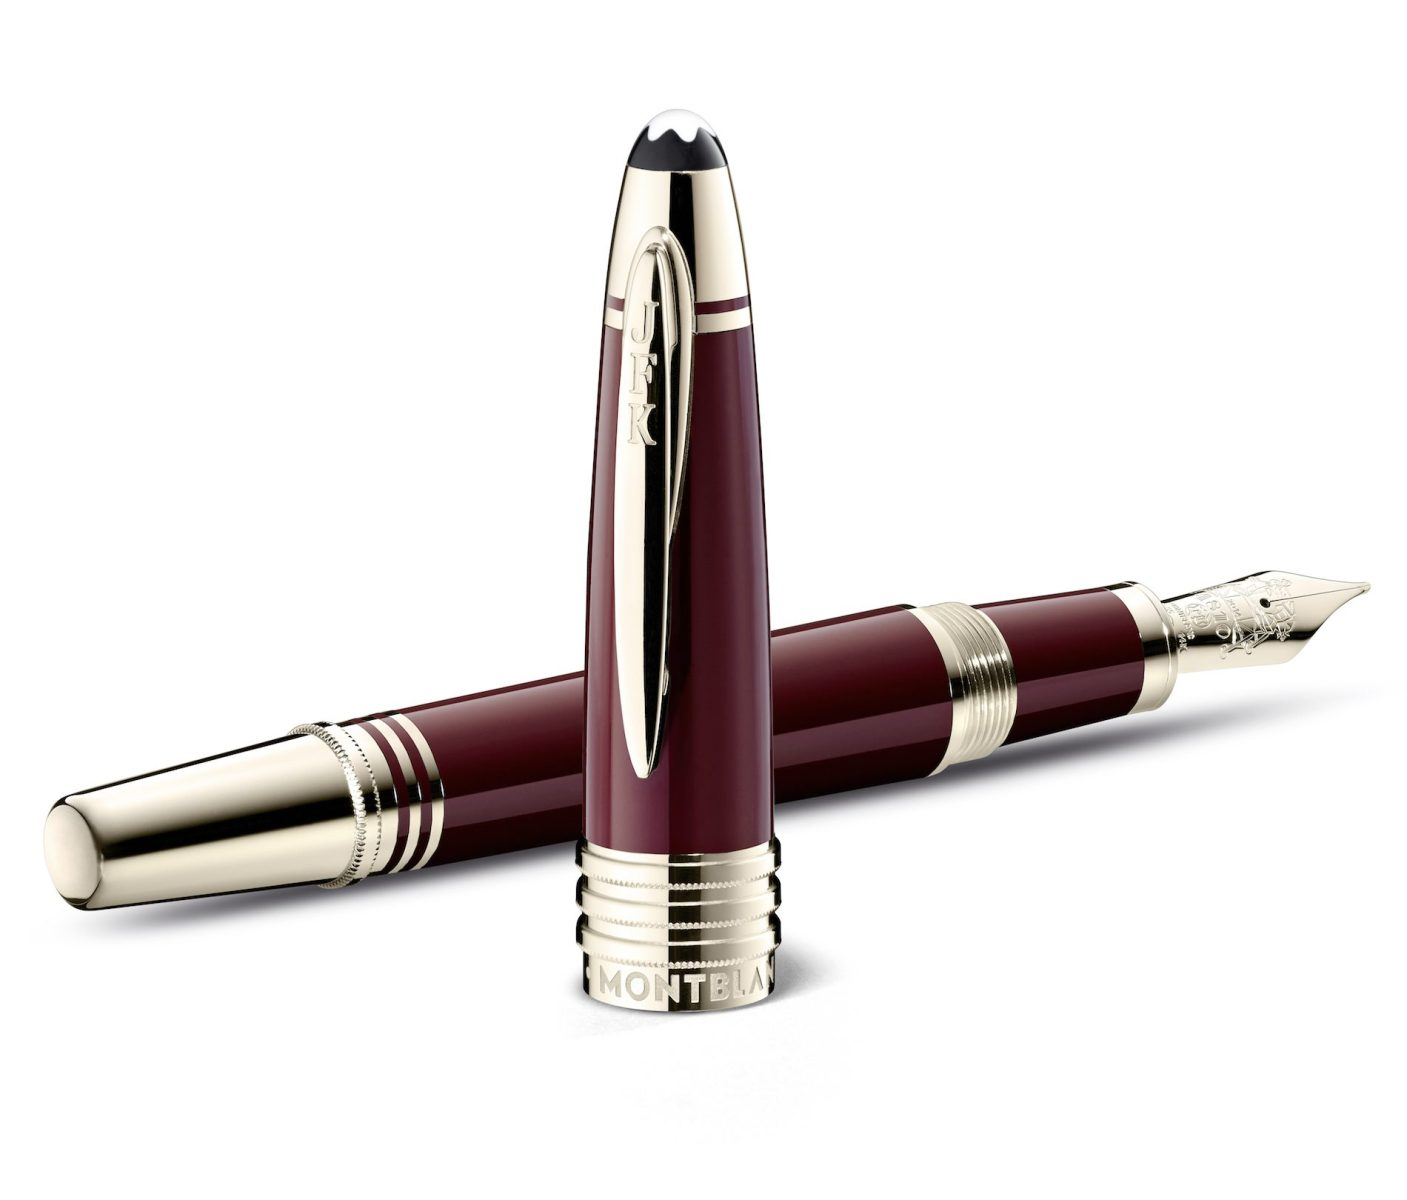 This Luxurious Pen Was Inspired by JFK